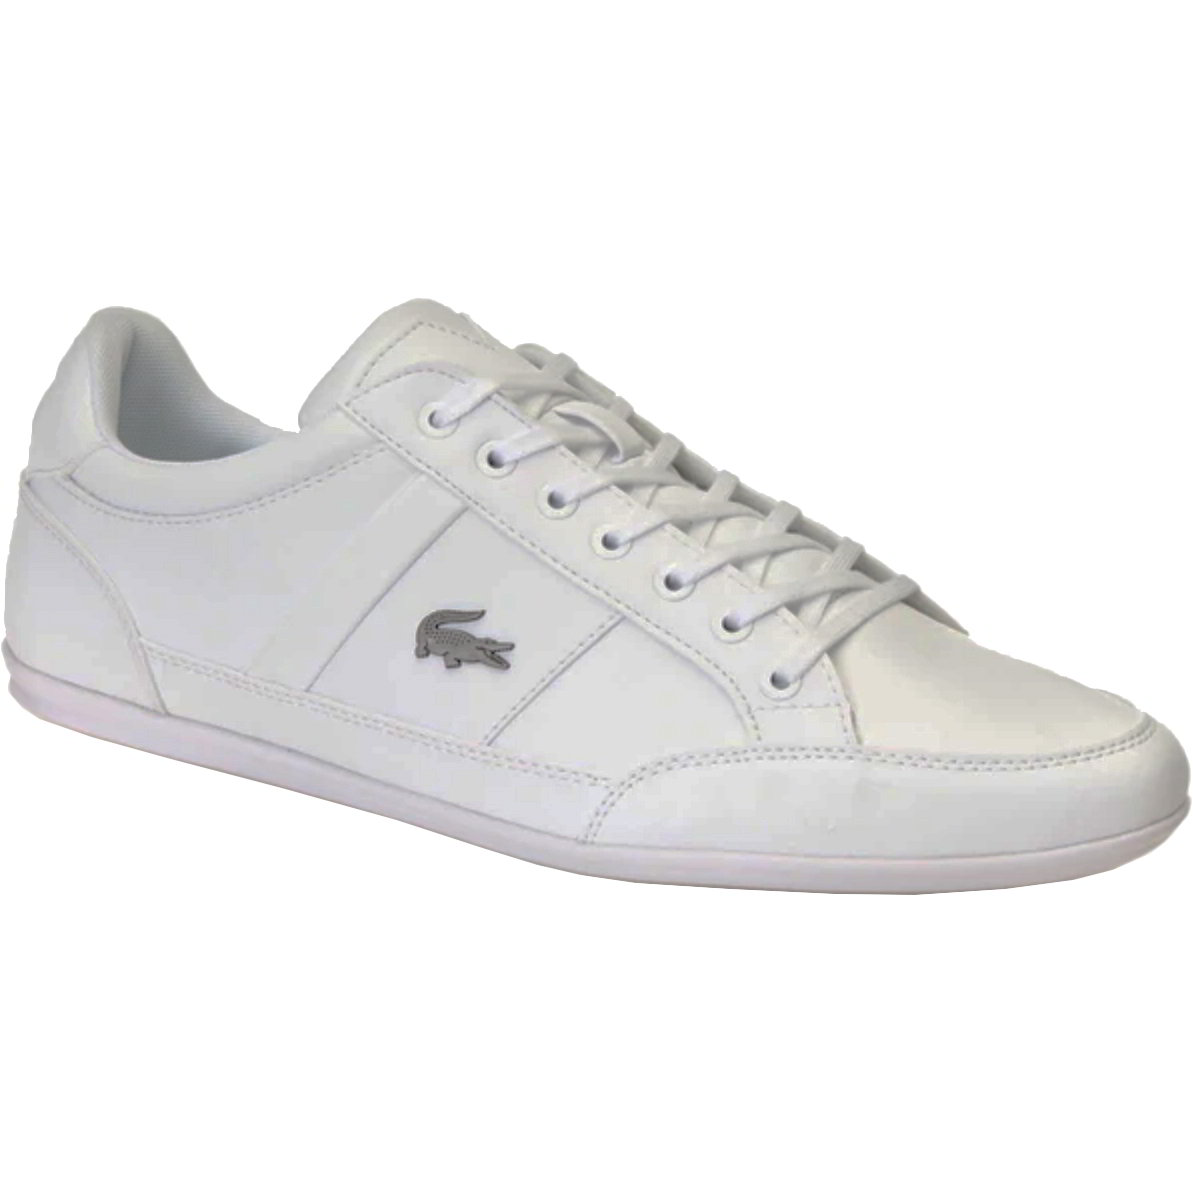 Lacoste Mens Chaymon Leather Trainers Shoes - White White